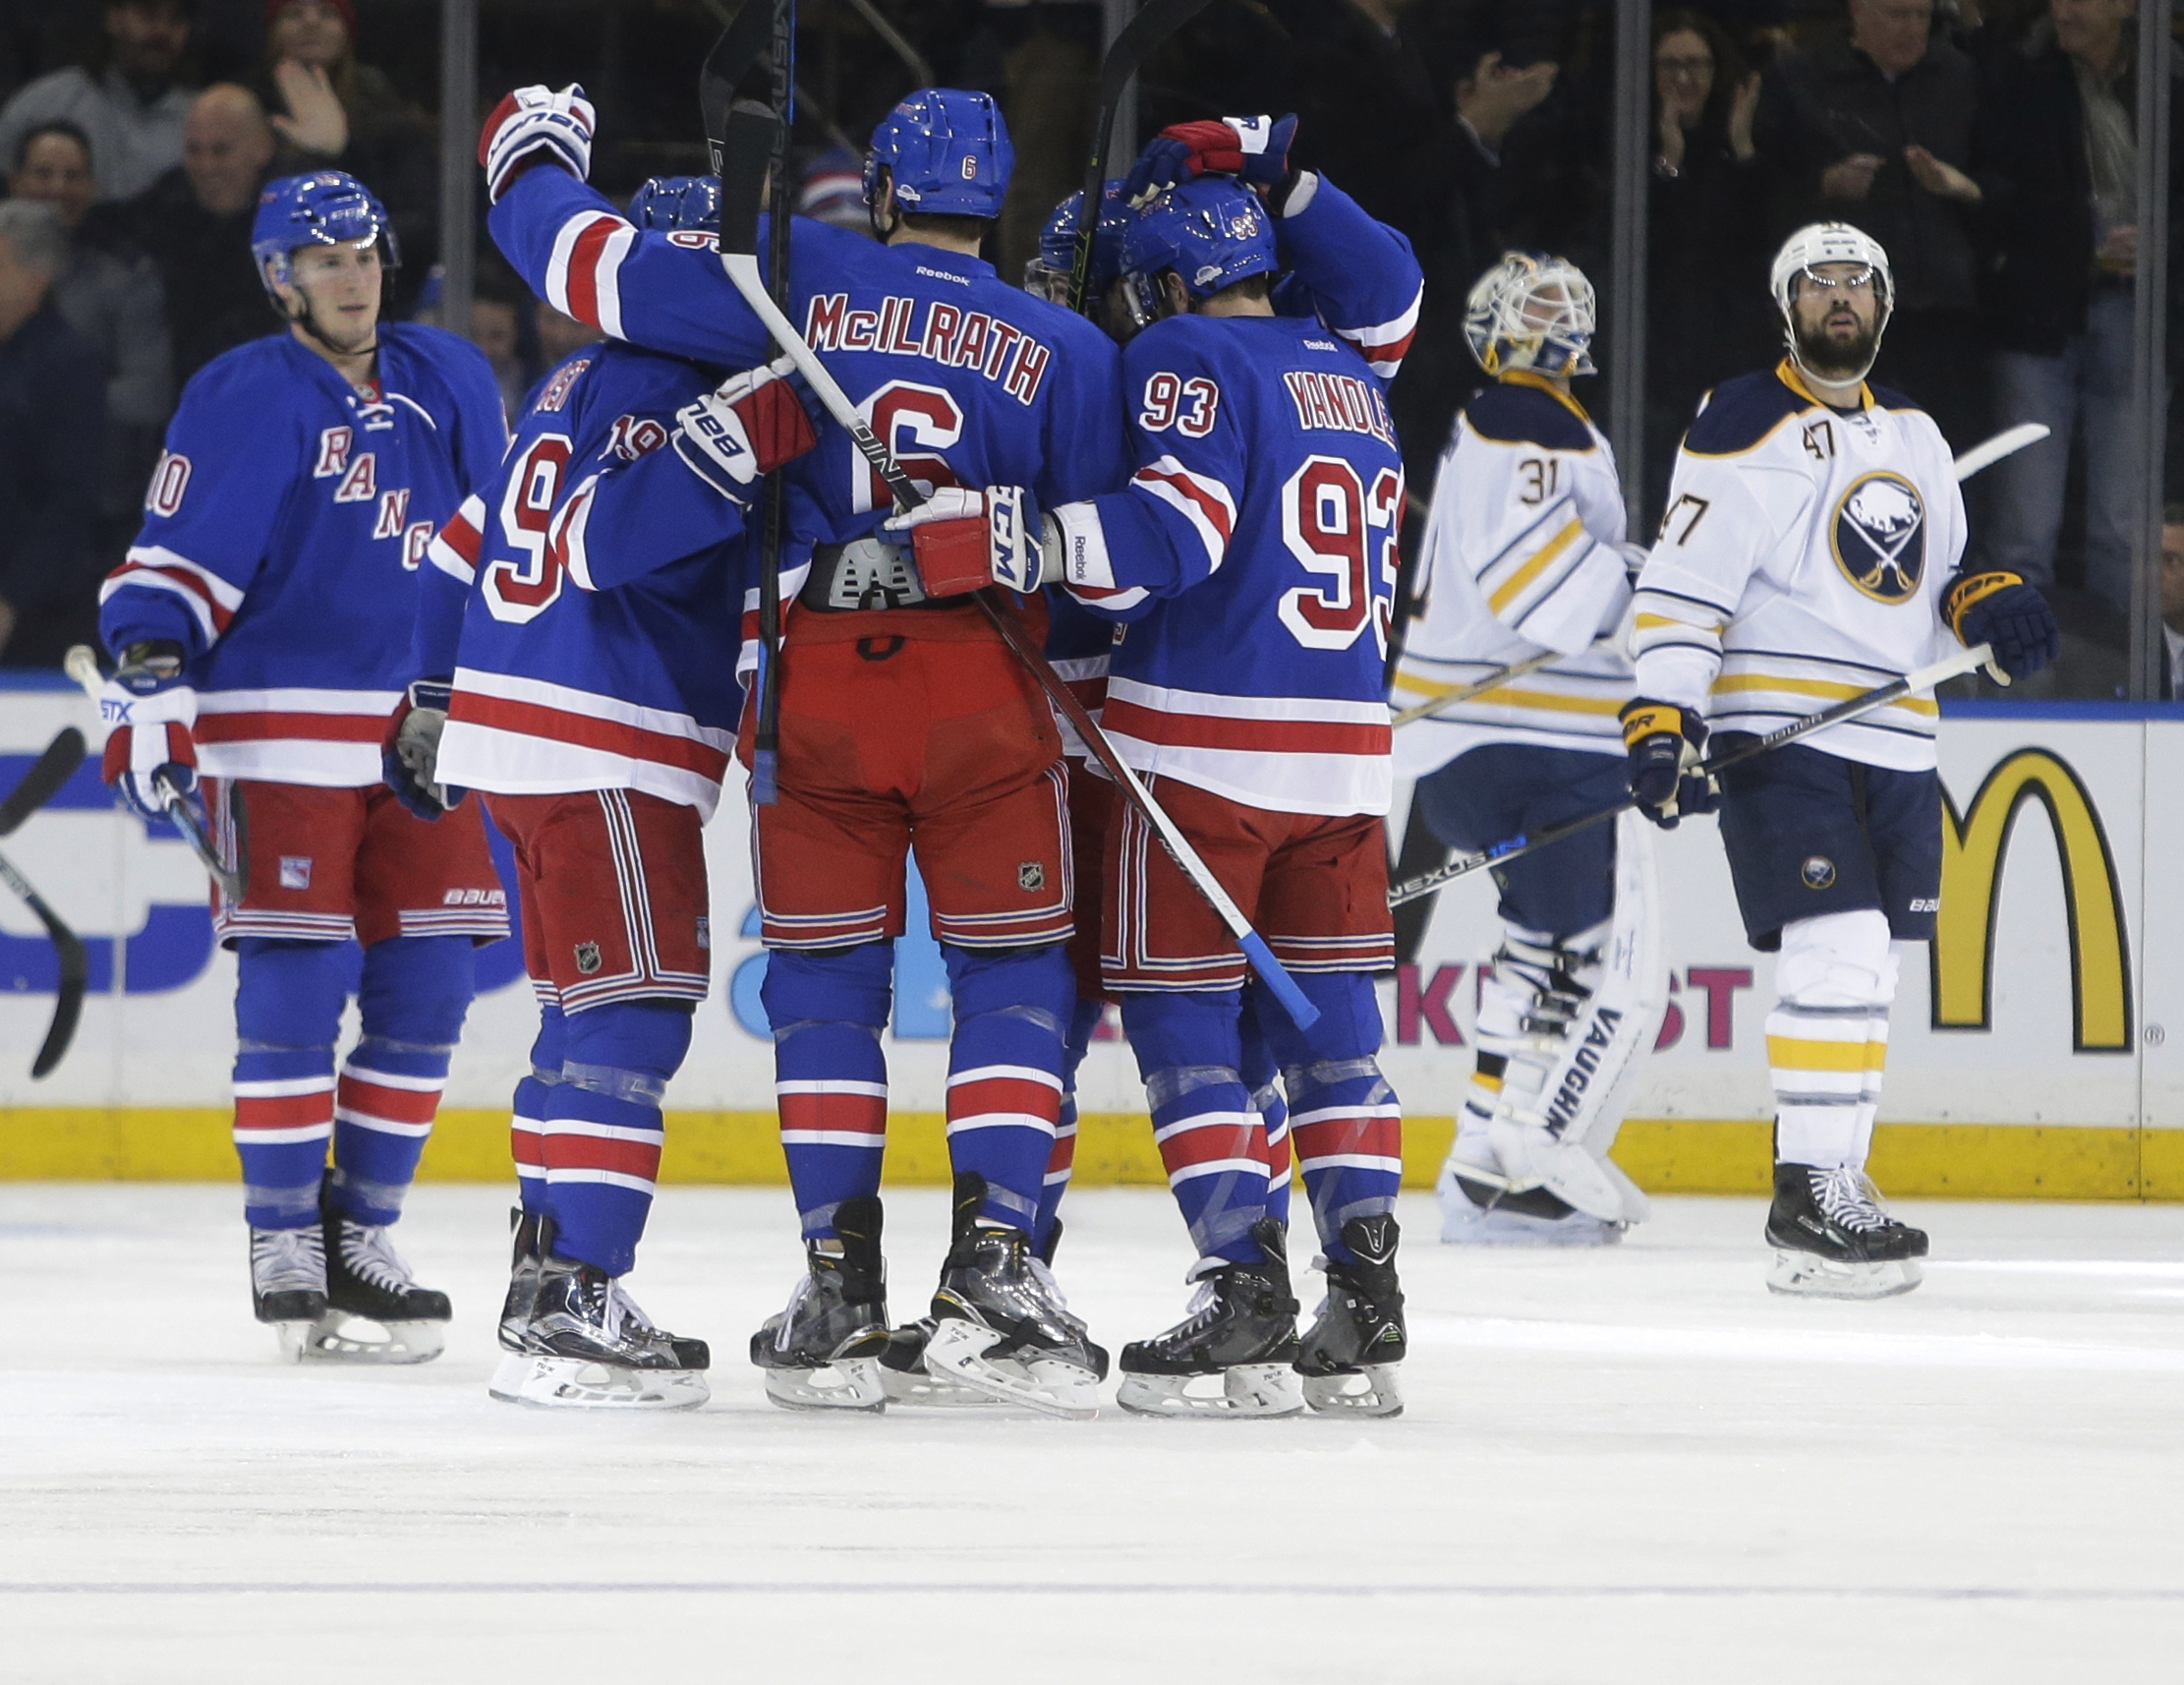 Buffalo Sabres goalie Chad Johnson (31) and Zach Bogosian (47) watch as the New York Rangers celebrate a goal by J.T. Miller during the first period of an NHL hockey game Monday, Jan. 25, 2016, in New York. (AP Photo/Frank Franklin II)